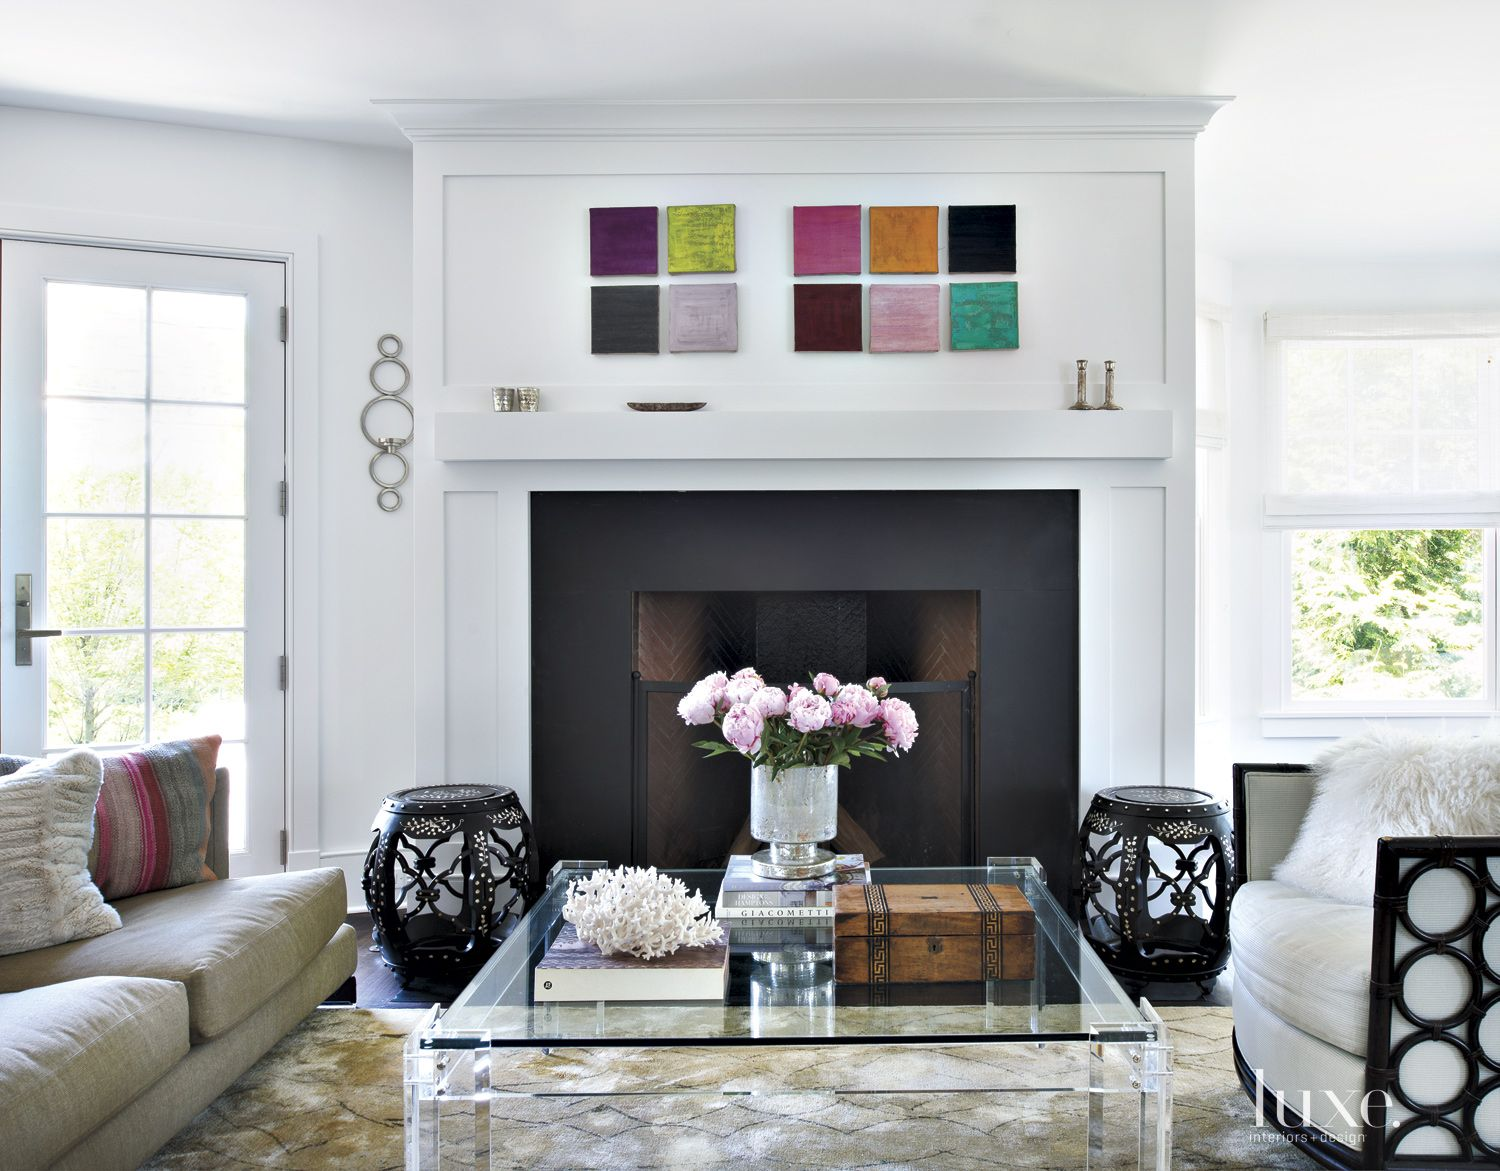 Contemporary White Living Room with Homeowner's Artwork